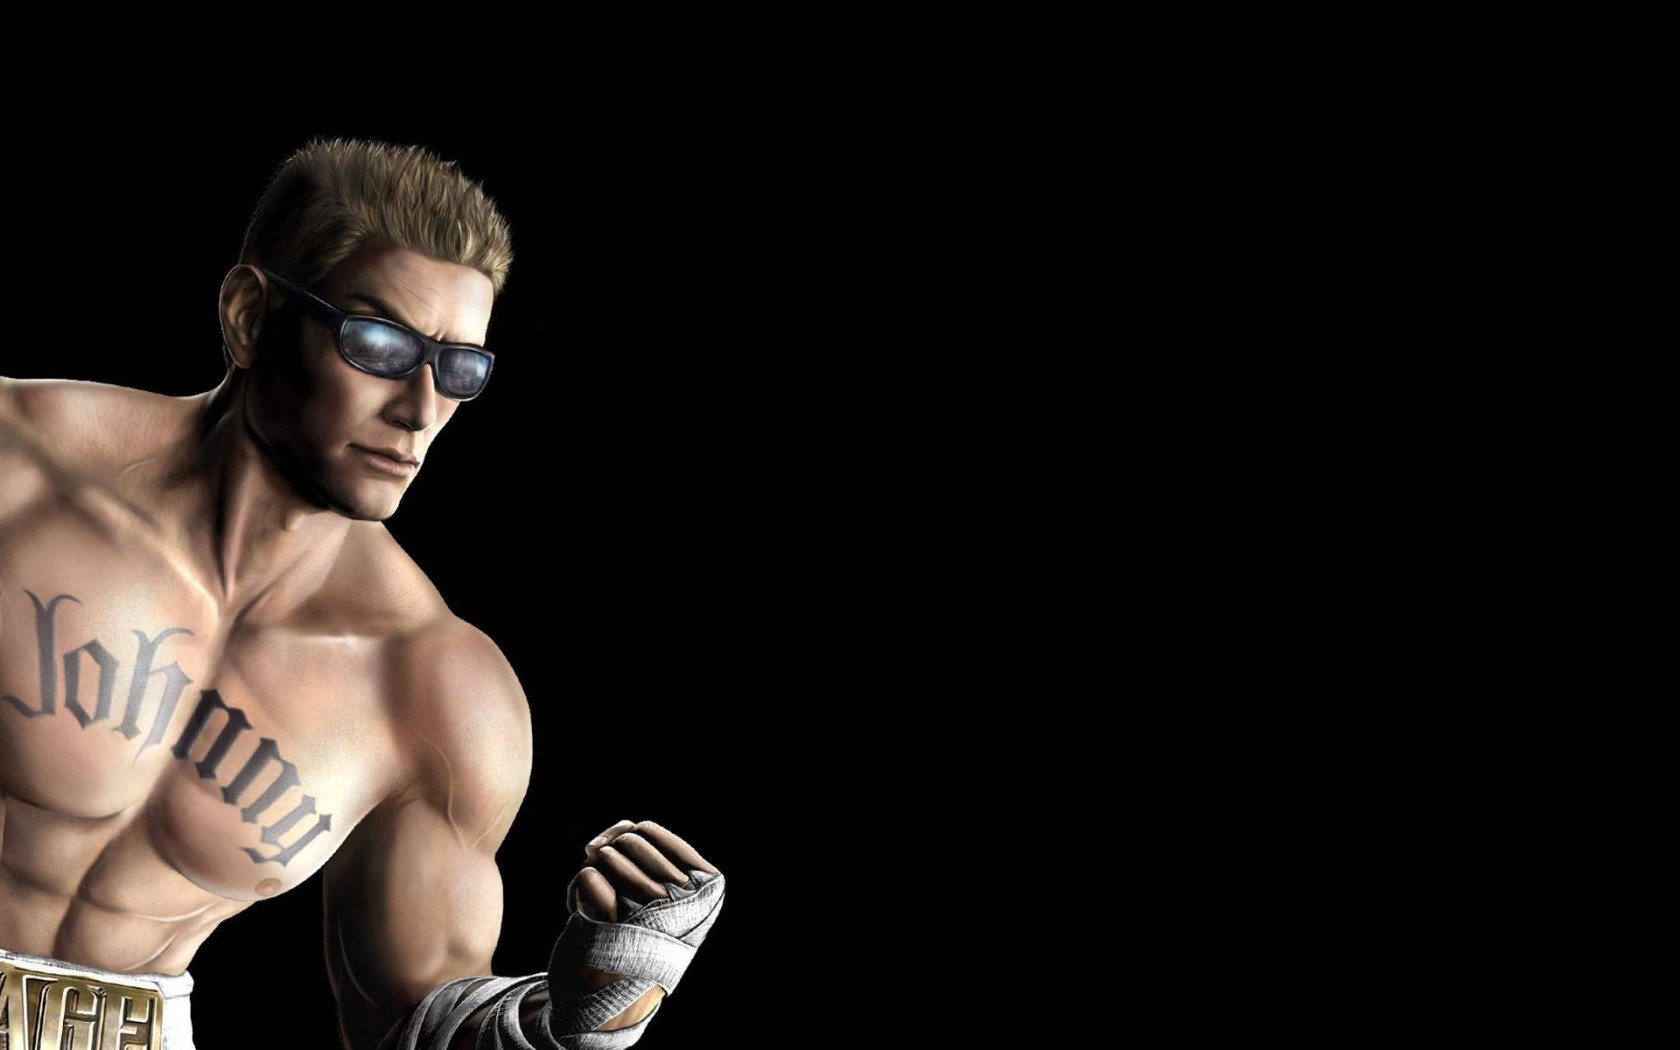 Mortal Kombat wallpaper Johnny Cage